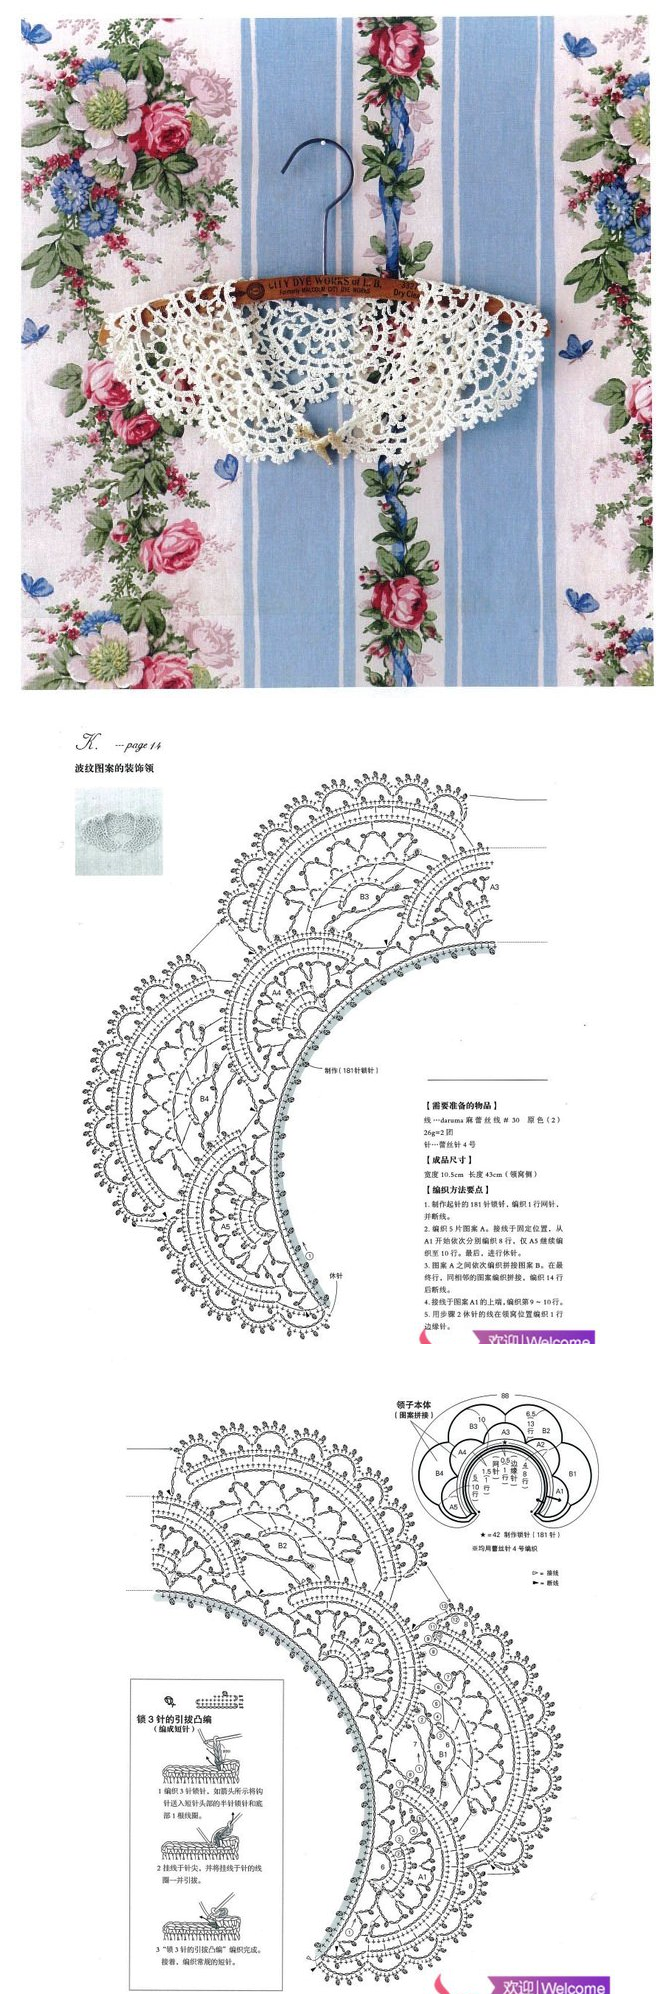 Reading Japanese Crochet Diagram Wire Data Schema Patterns Collar On Pinterest Lace Doily With Diagrams Decorative